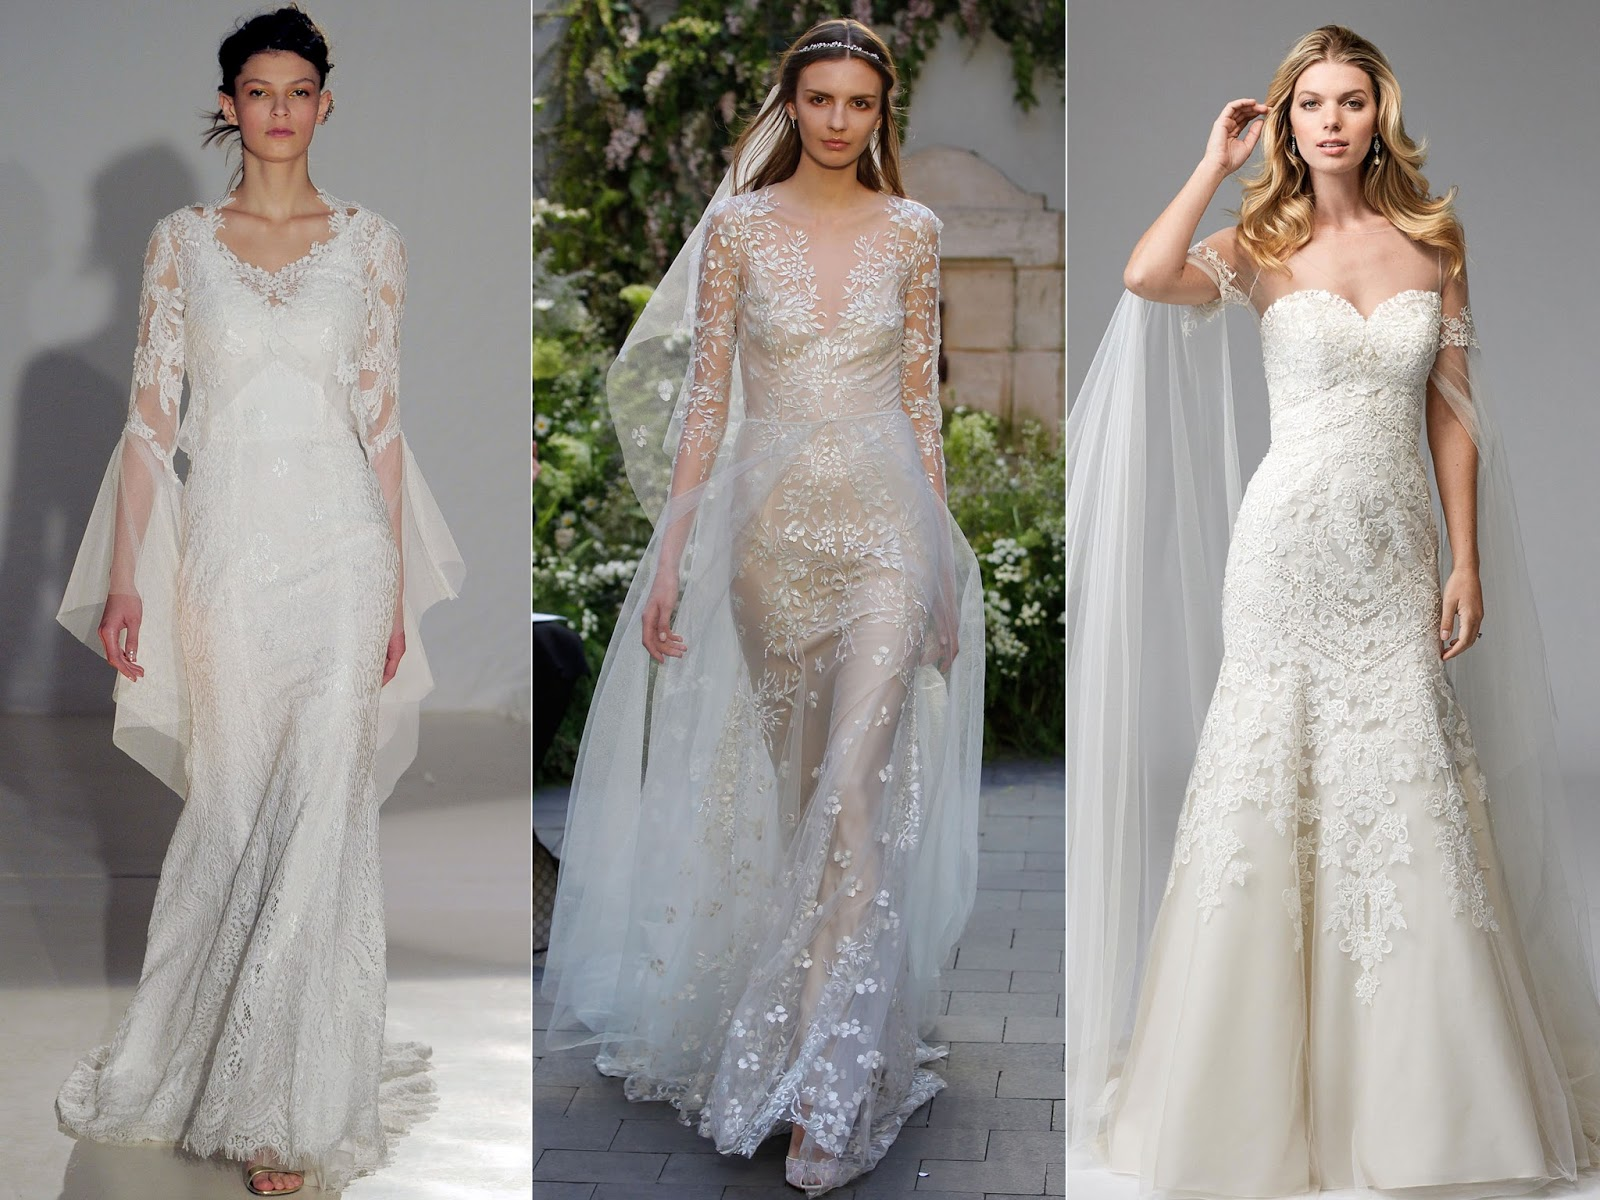 eDressit Fashion Blog: Find the Perfect Wedding Dress for Your Body Type